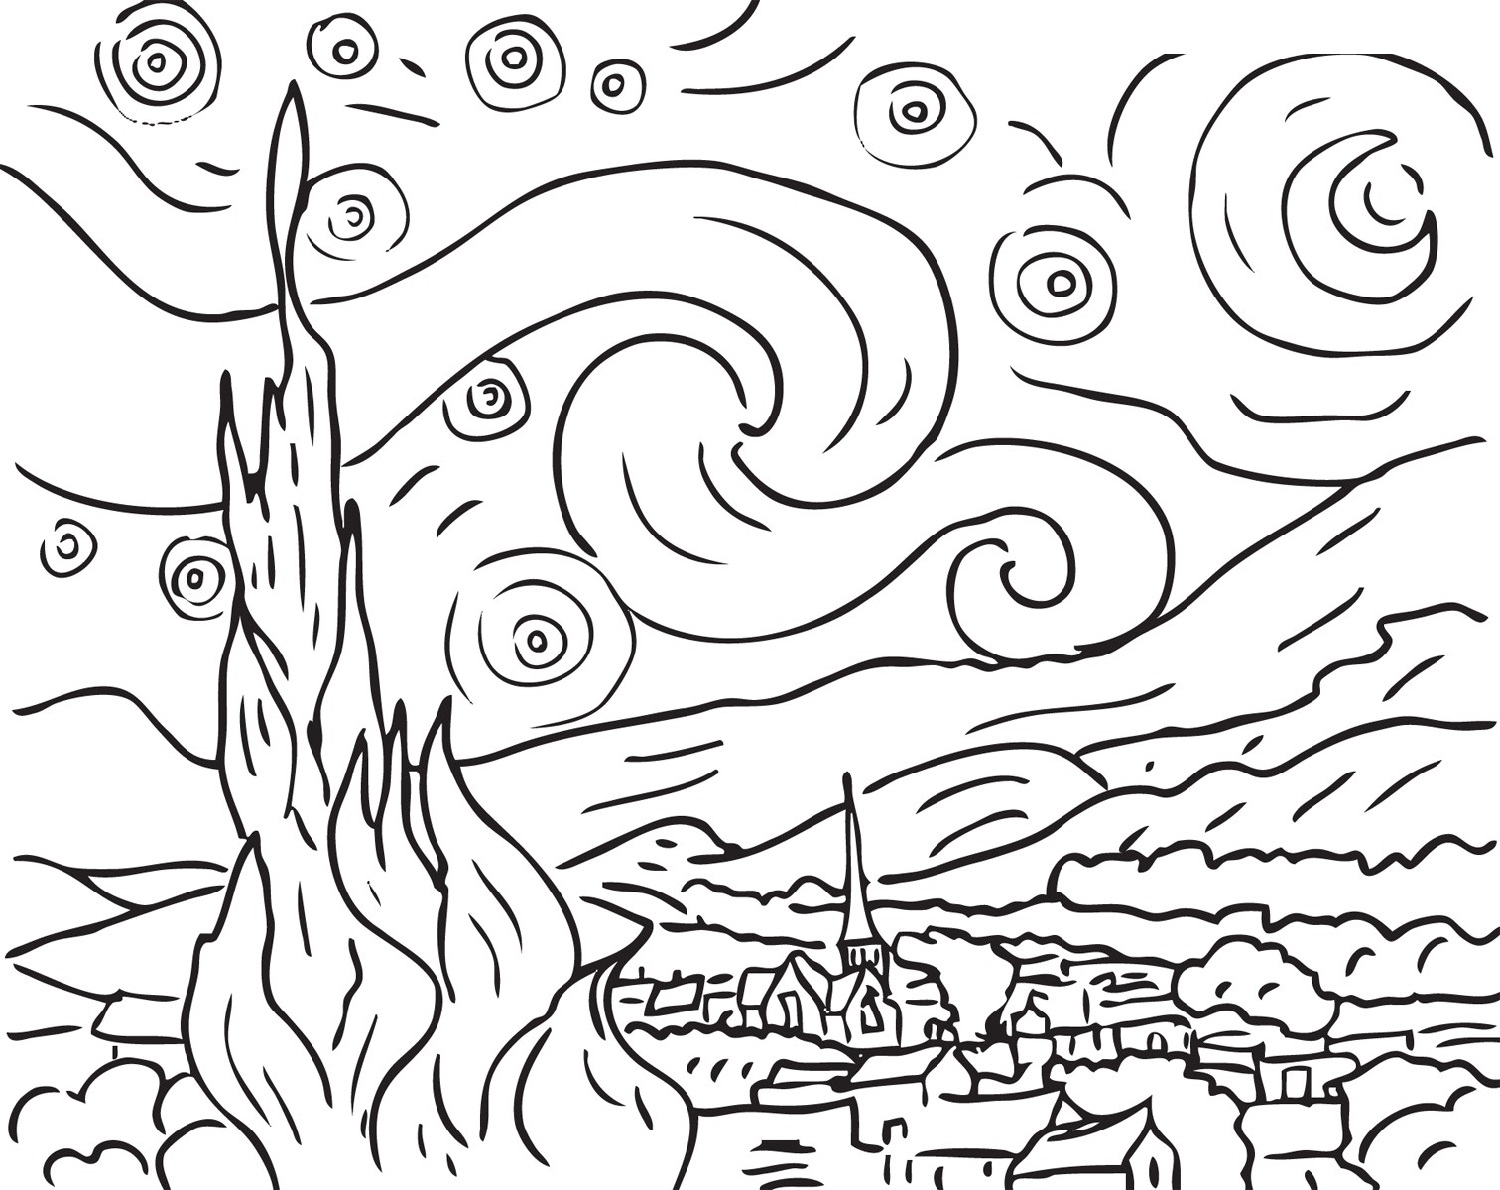 Cool Coloring Pages PaintingCool Coloring Pages Painting